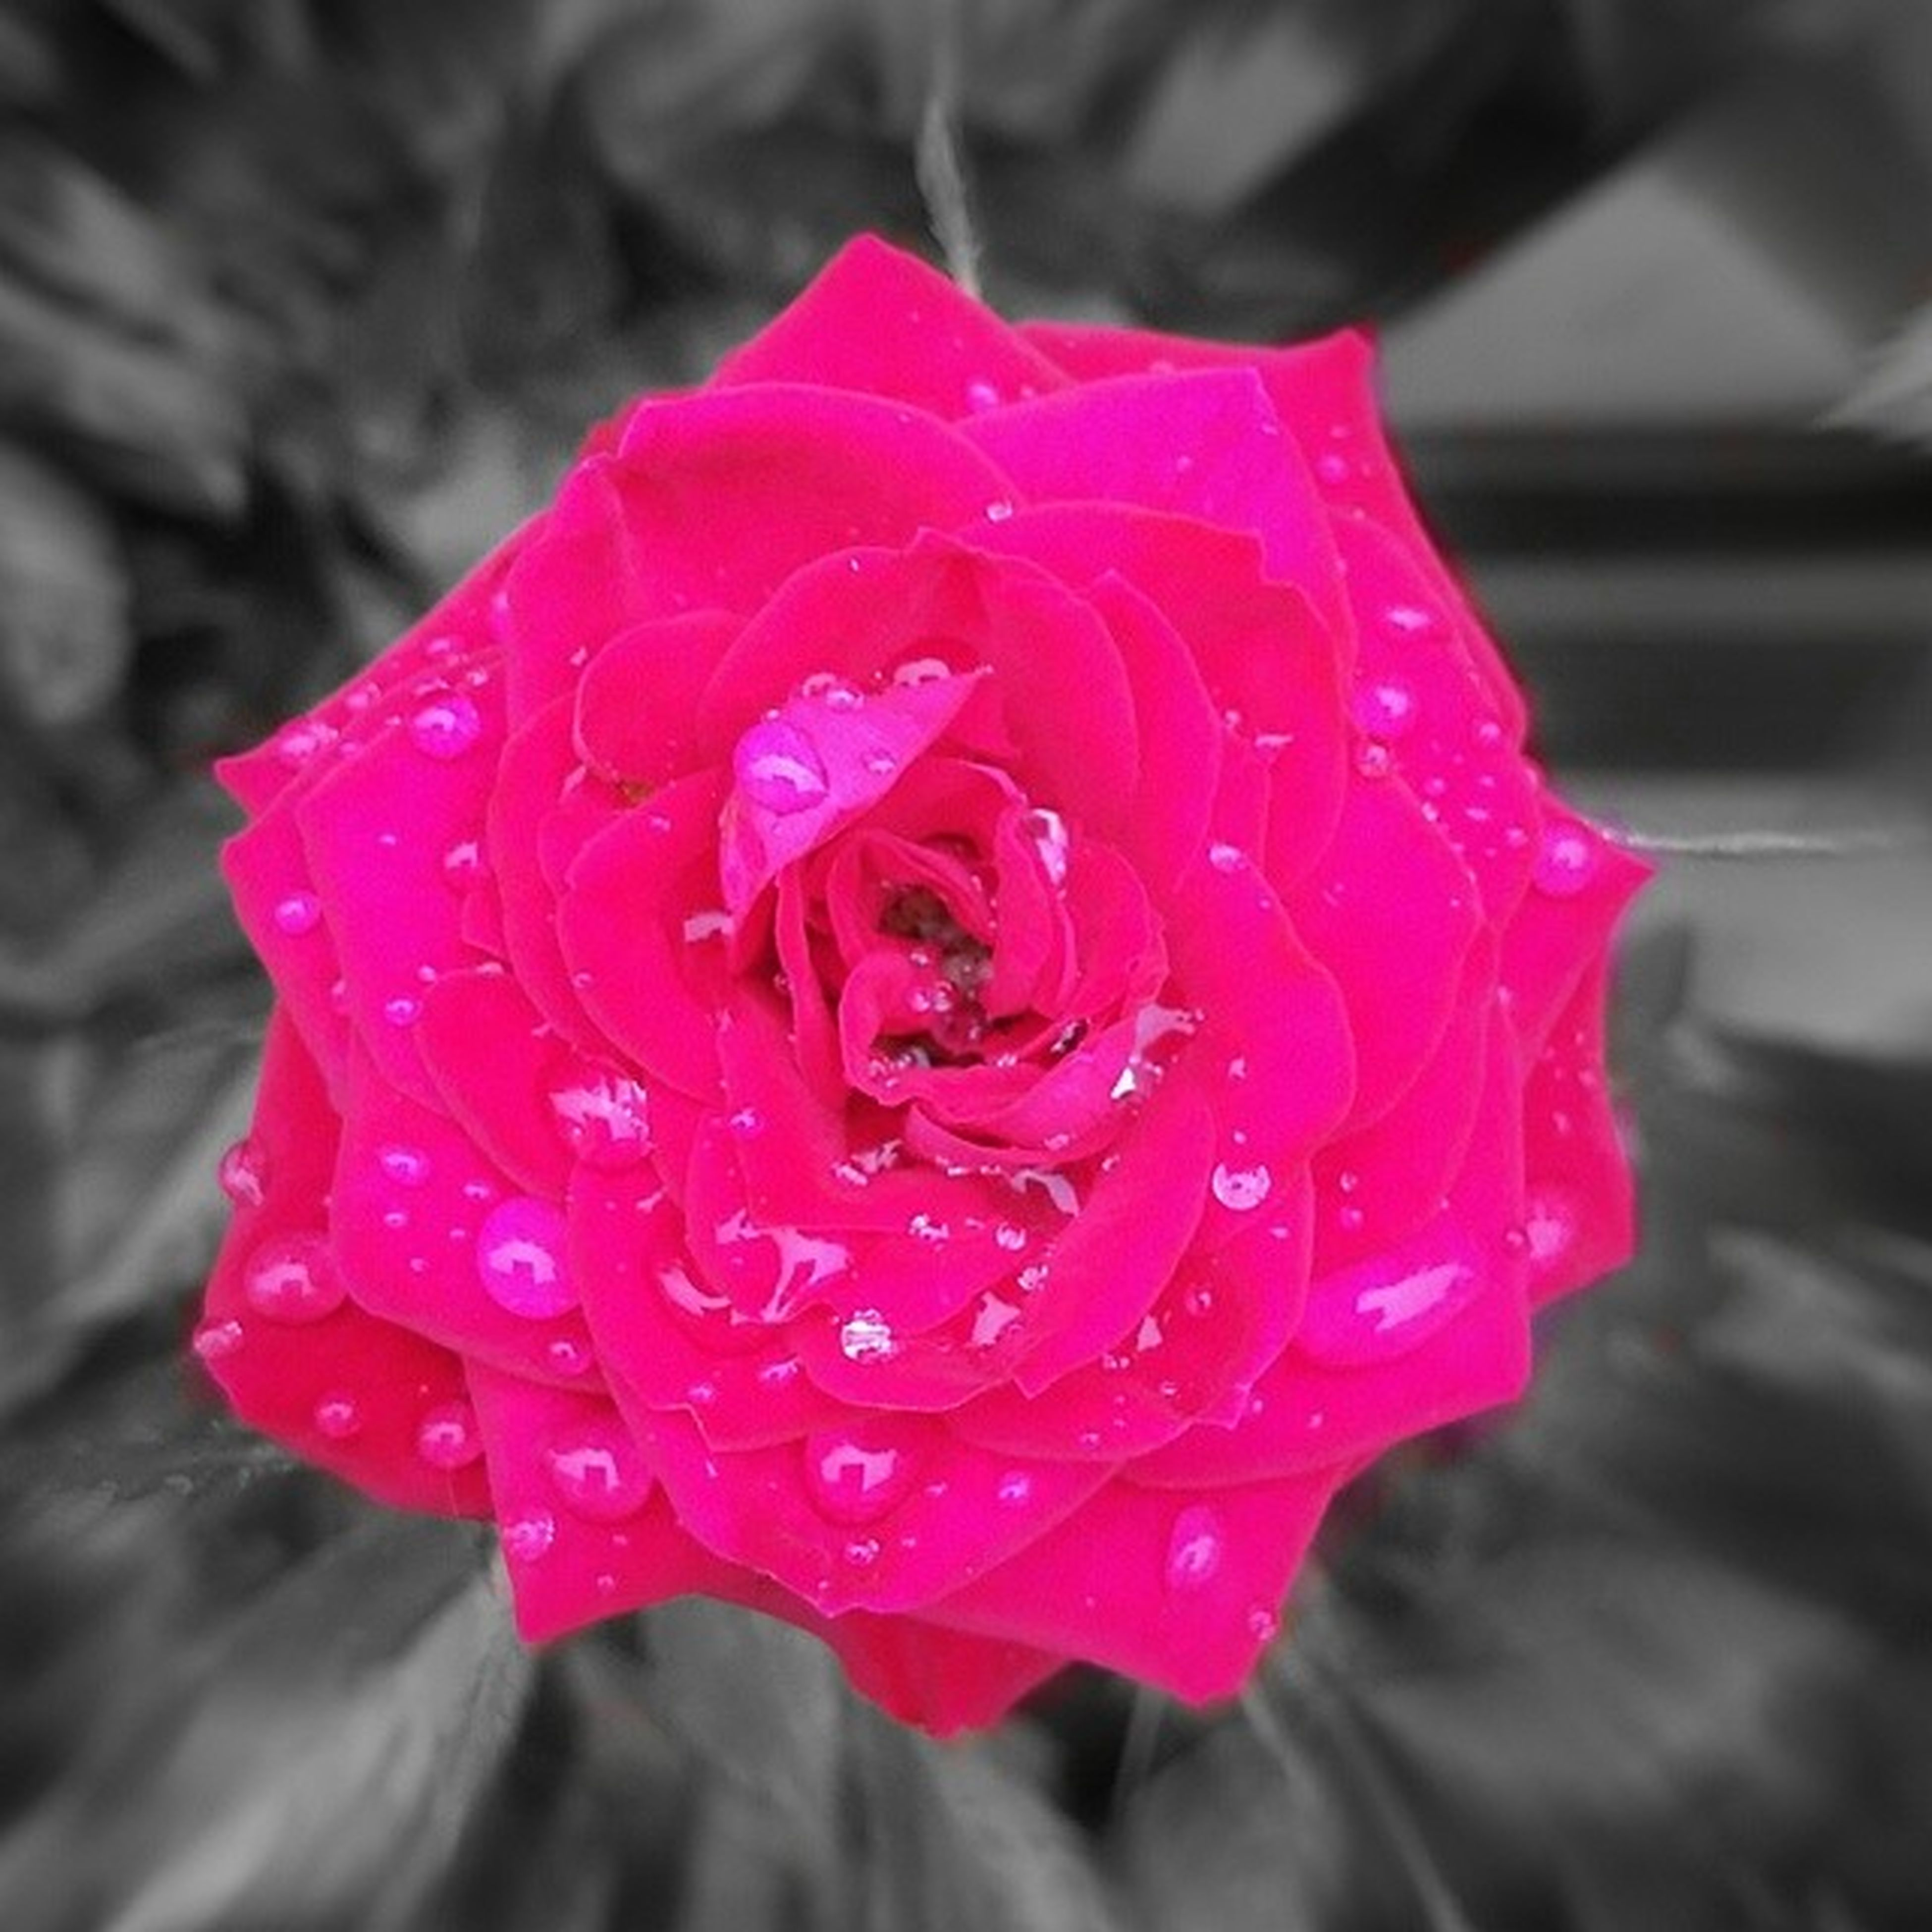 flower, petal, flower head, freshness, fragility, drop, close-up, rose - flower, single flower, wet, beauty in nature, focus on foreground, water, blooming, growth, nature, pink color, dew, in bloom, red